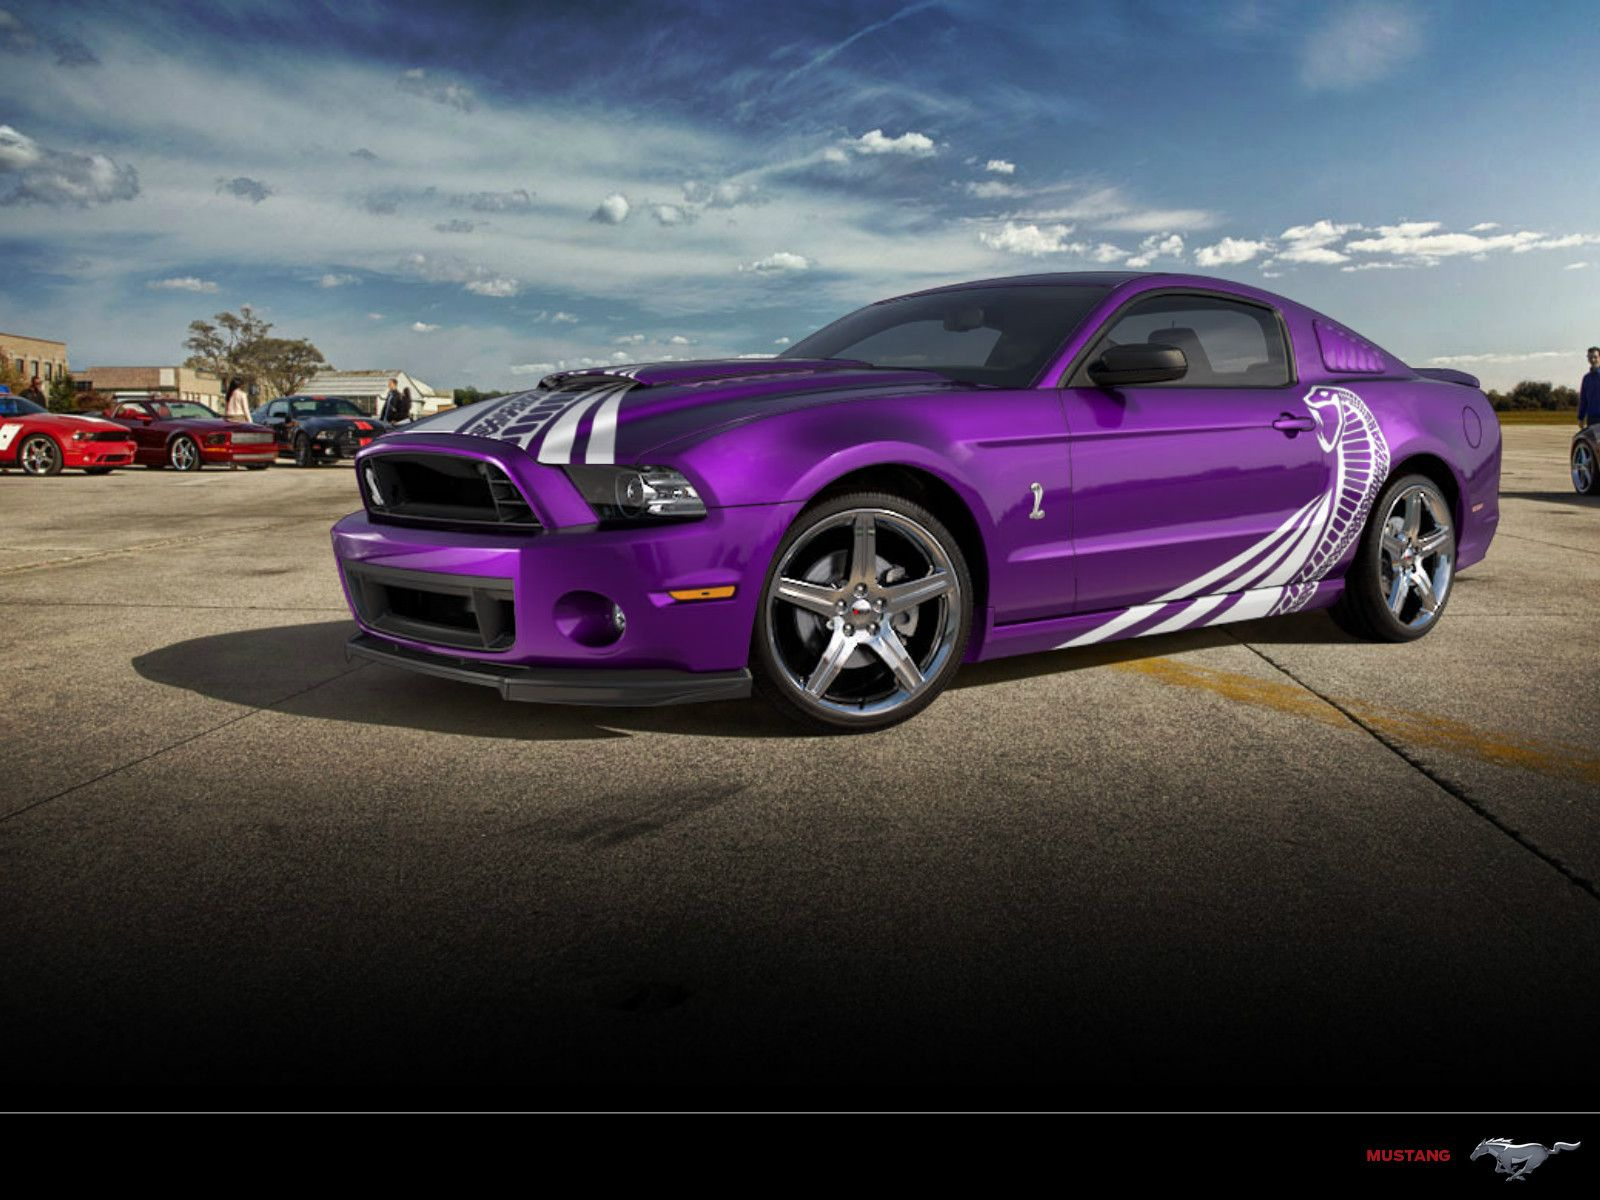 Purple mustang cobra i don t usually like mustangs or fords in